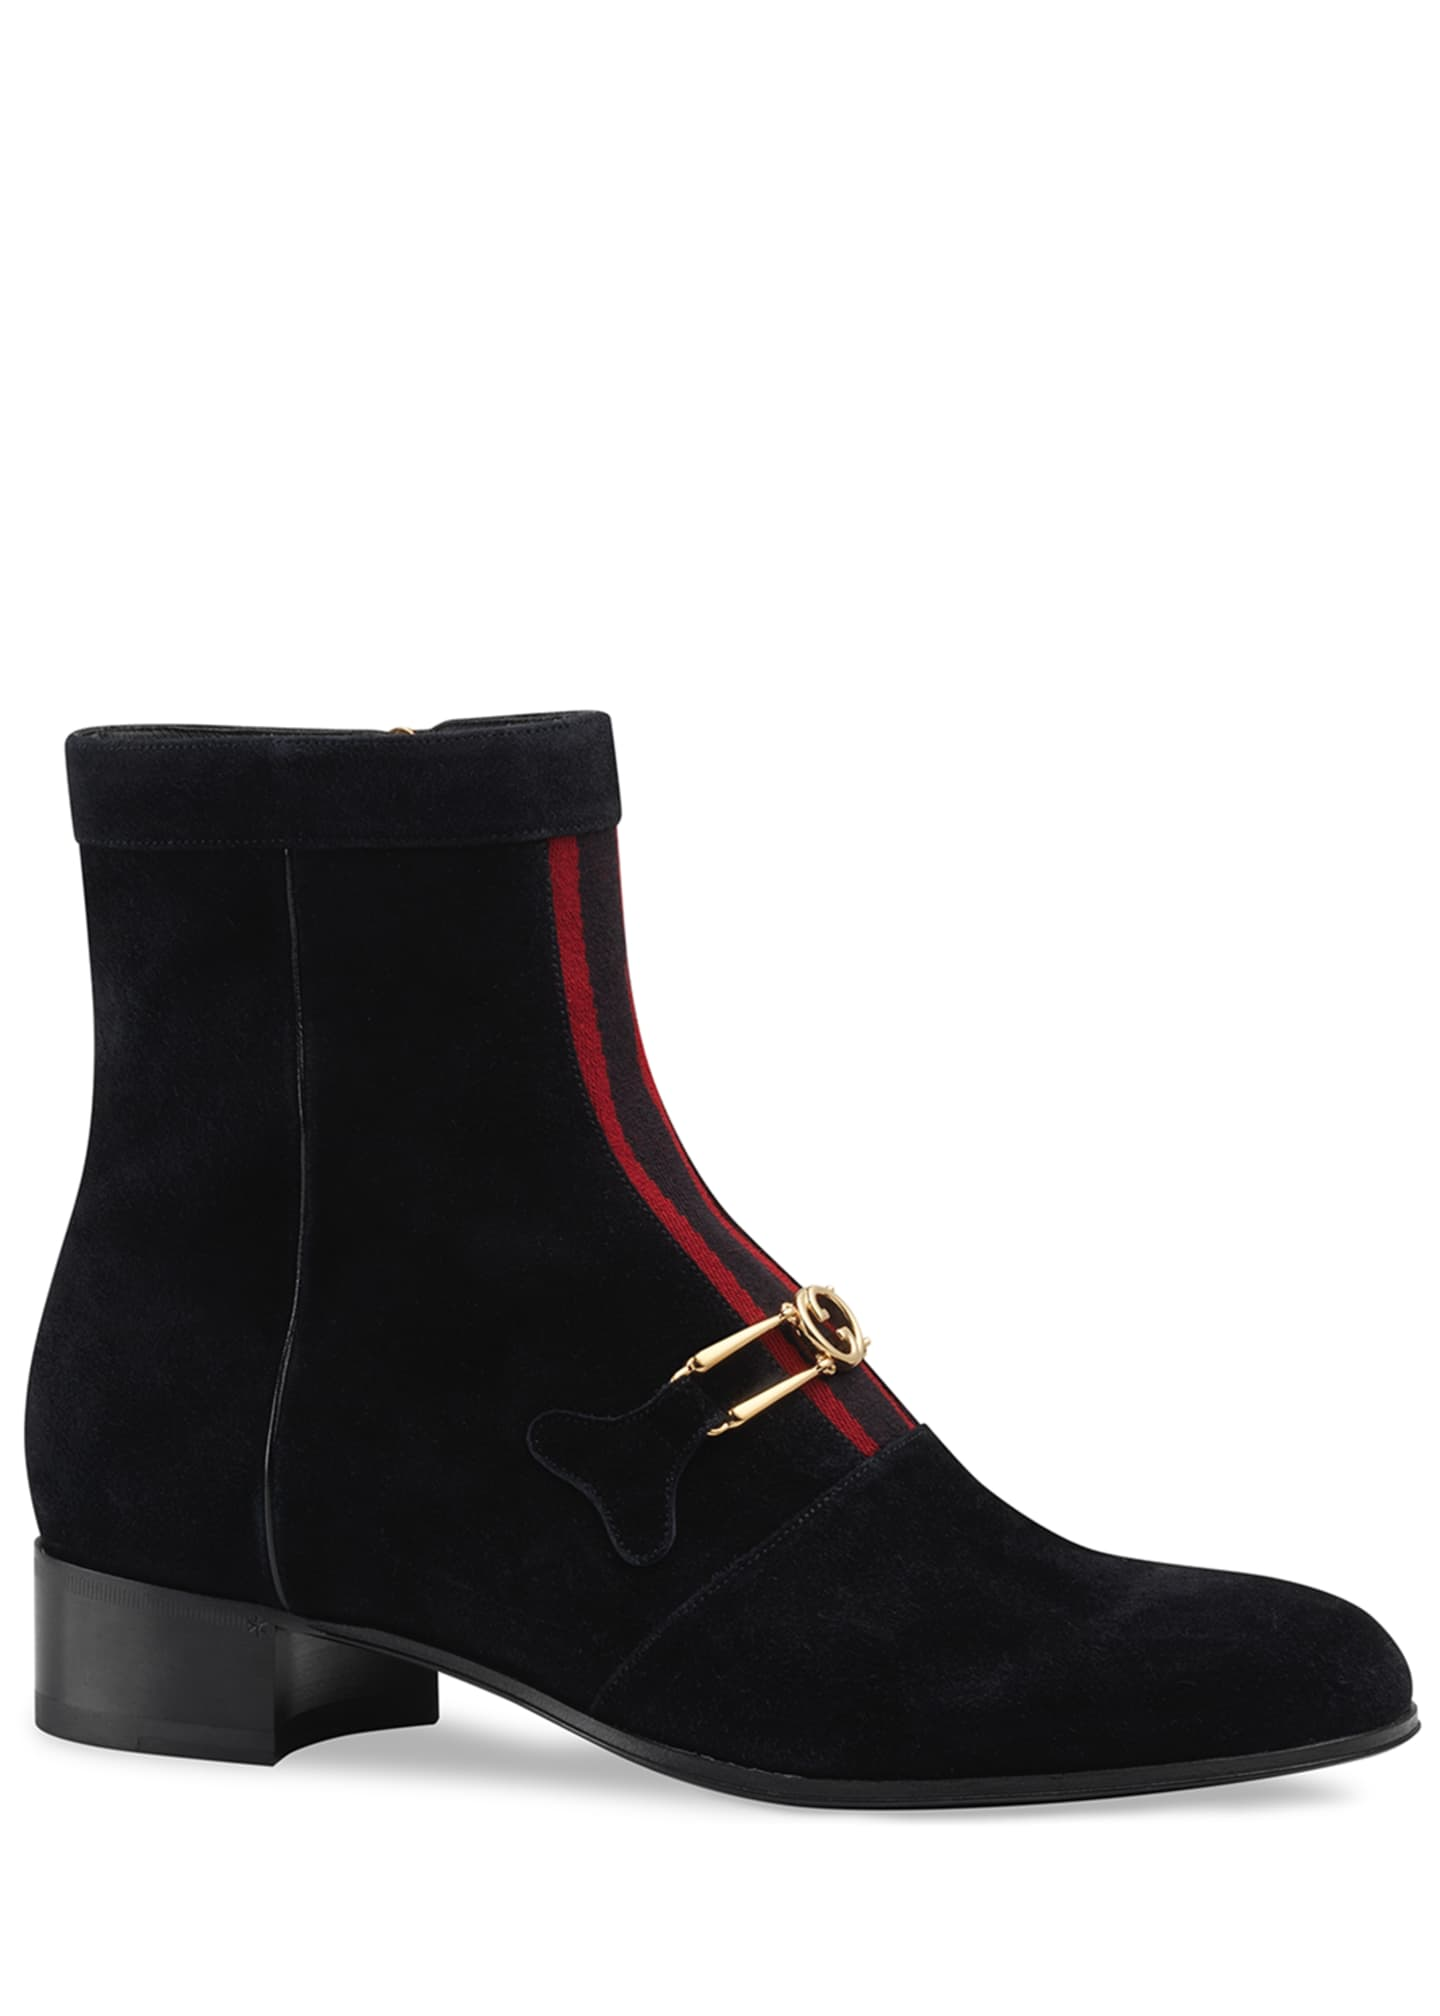 Gucci Men's Lubbock G Logo and Web-Stripe Suede